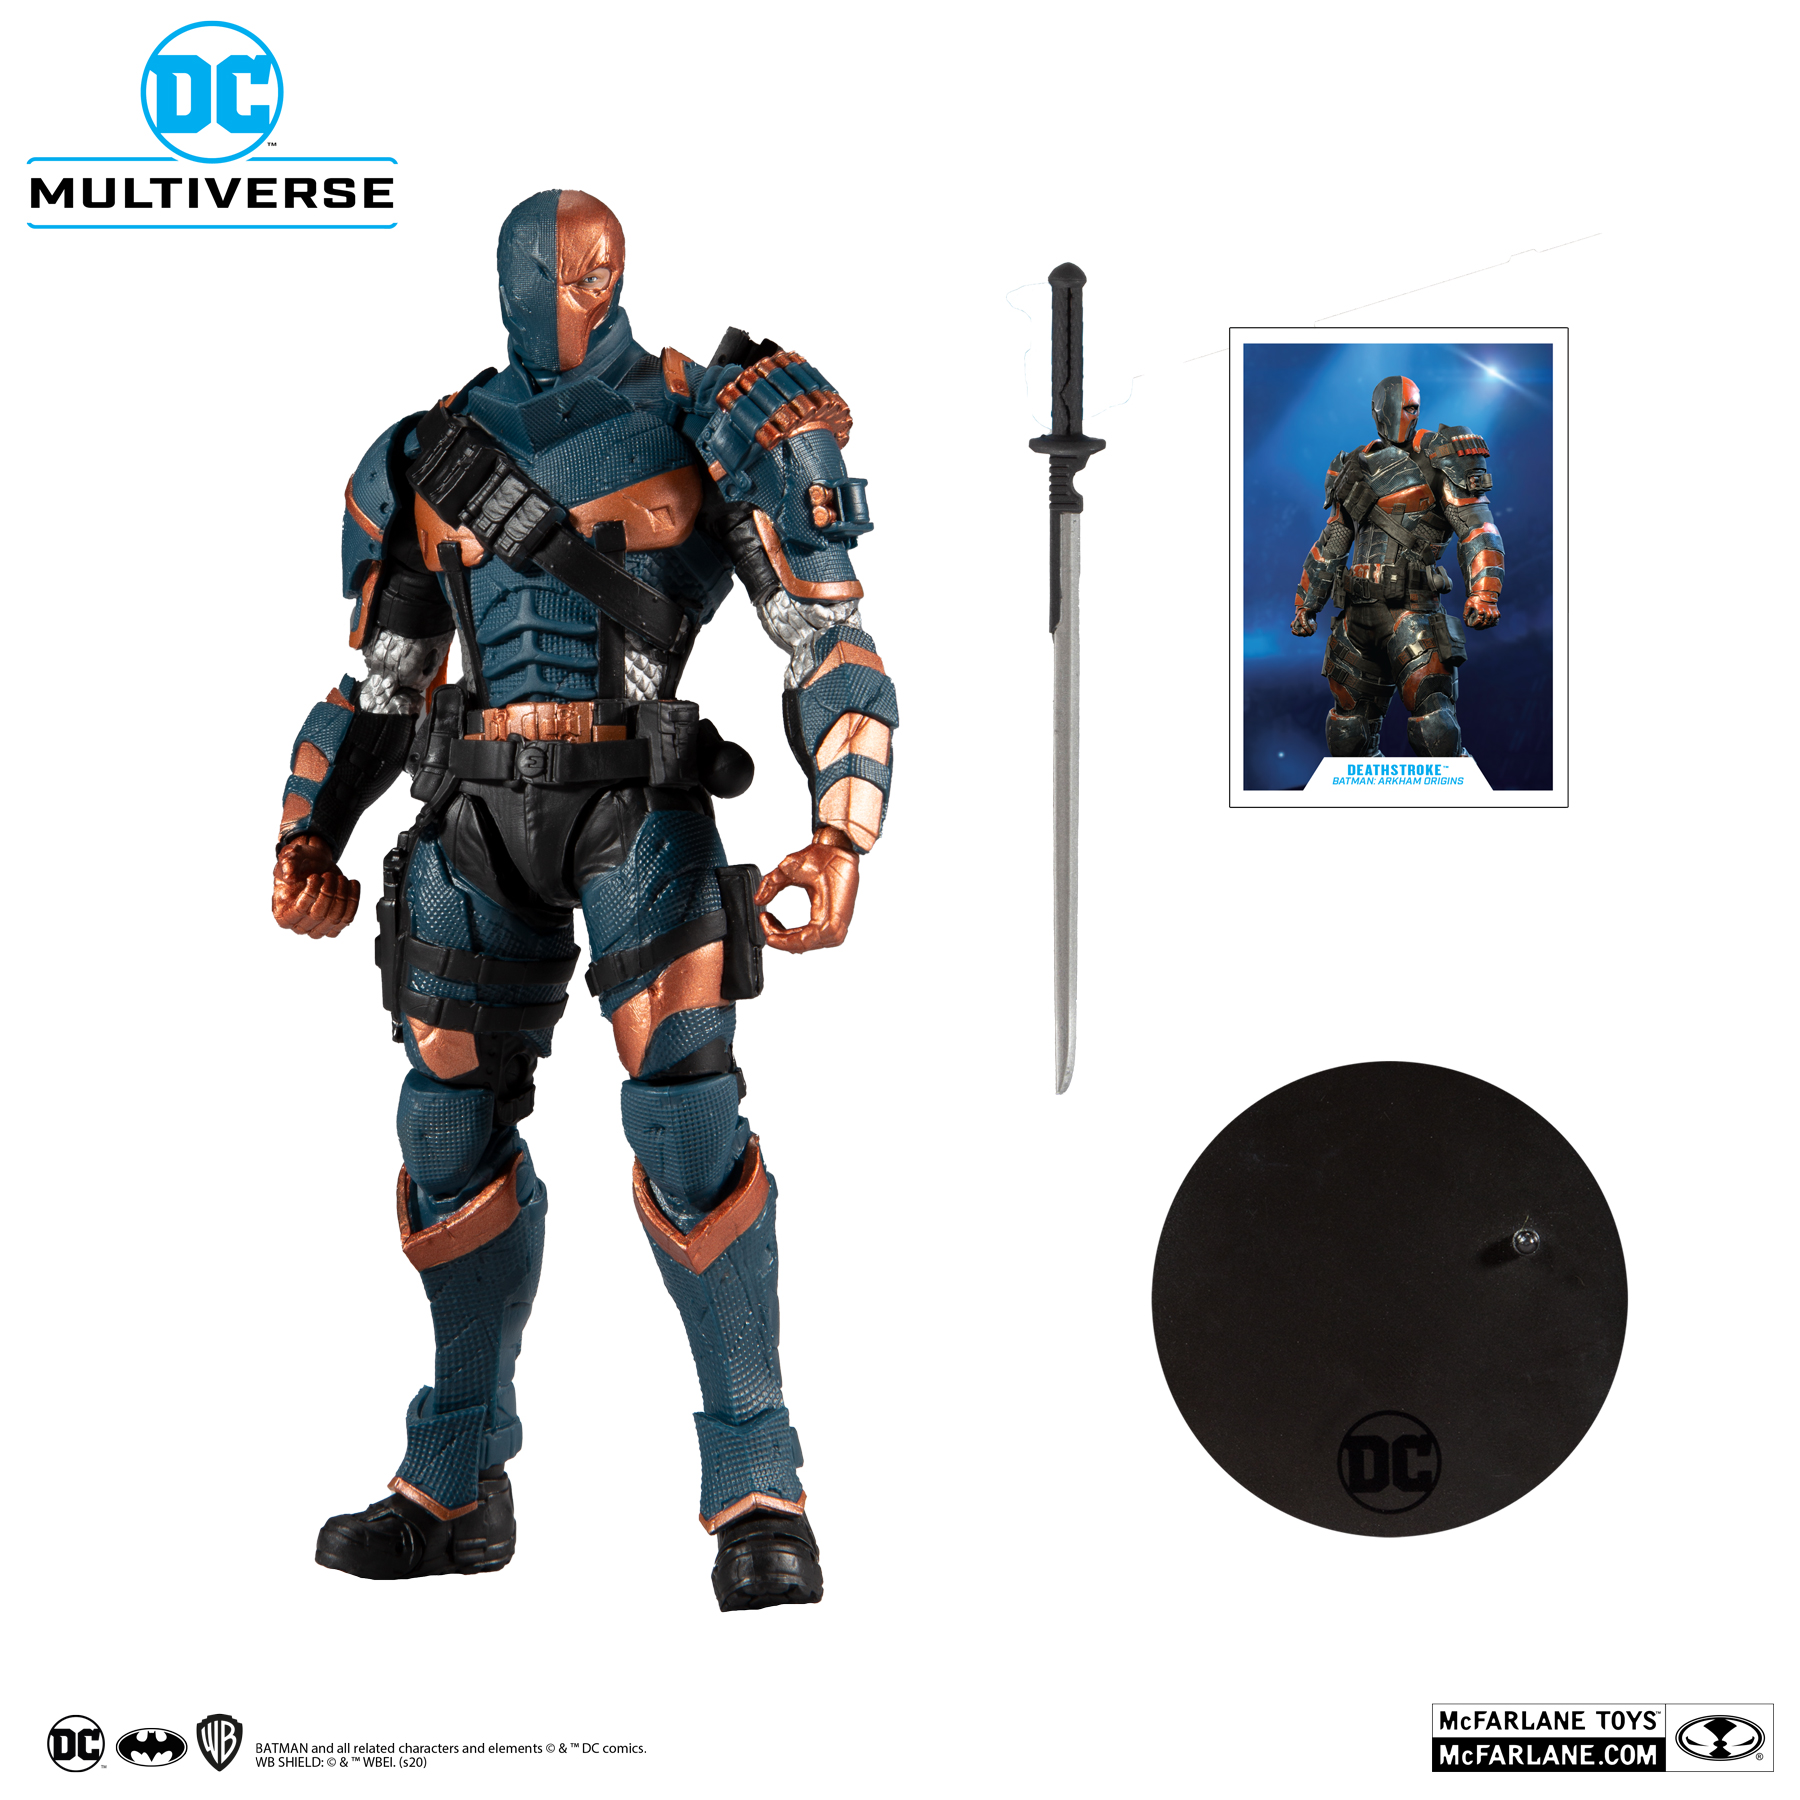 ARKHAM ORIGINS DEATHSTROKE - DC MULTIVERSE McFarlane Toys 7-Inch Action Figure